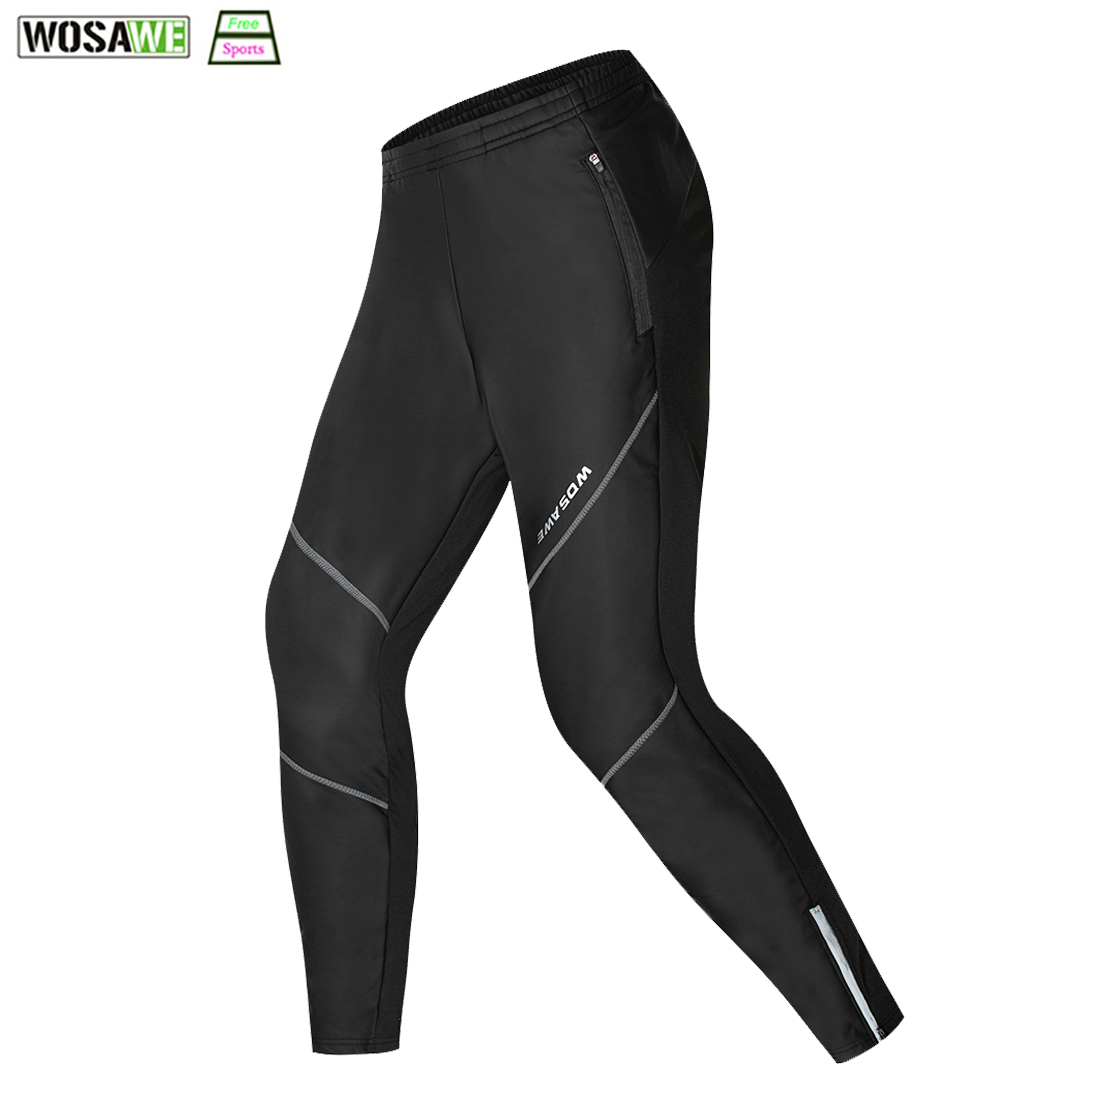 WOSAWE Winter Thermal Fleece Cycling Pants Waterproof Windproof MTB Road Bike Trousers Bicycle Clothing Sports Tights & Pants nuckily men s winter bicycle pants waterproof and windproof outdoor breathable polyester durable fabric cycling sports tights